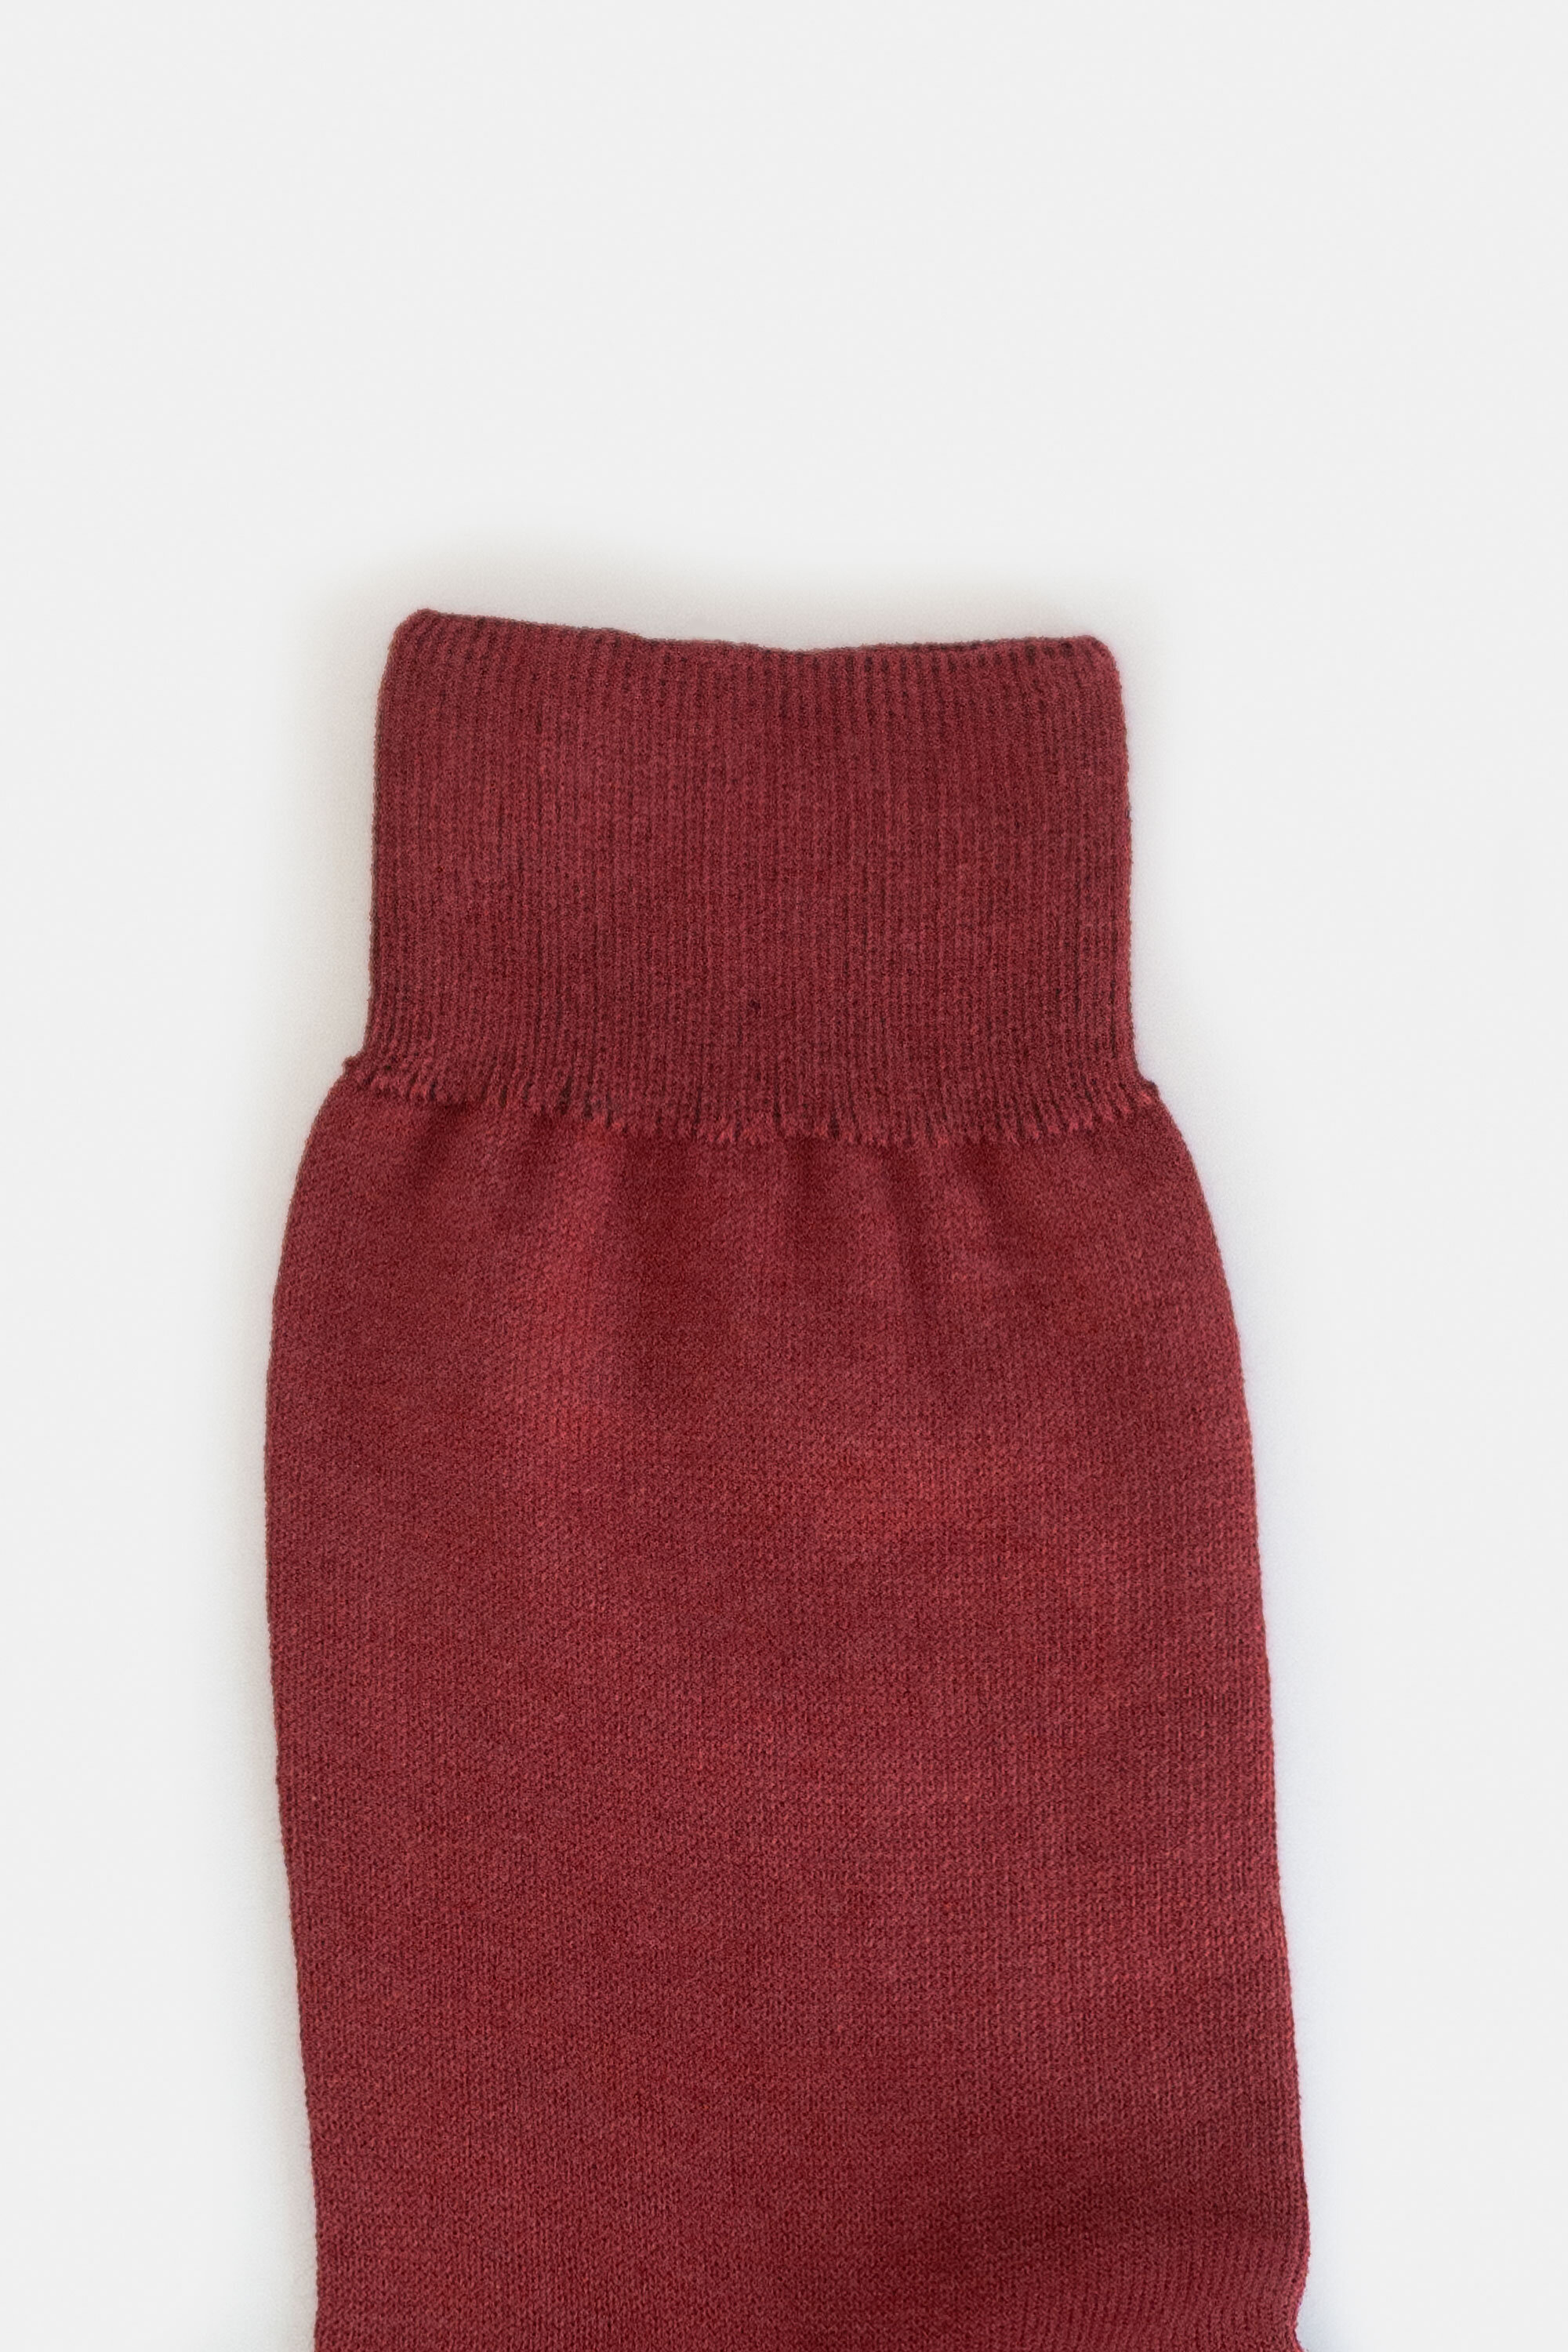 red sock top.jpg